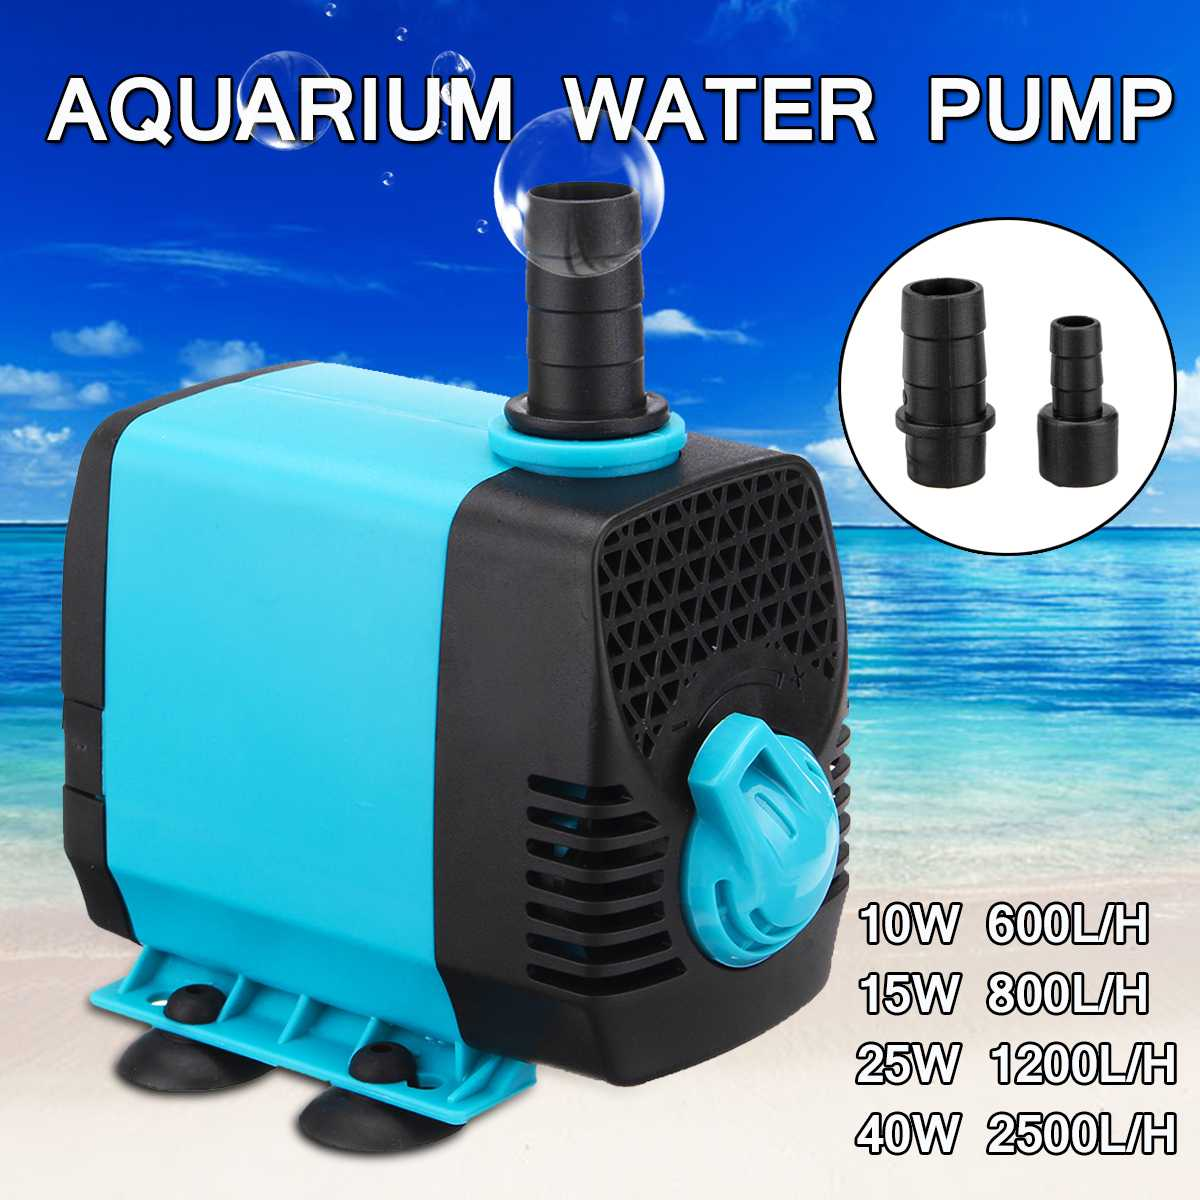 10/15/25/40W 220V Multifunctional Aquarium <font><b>Water</b></font> <font><b>Pumps</b></font> Tank Pond Pool Fountains <font><b>Pump</b></font> Waterproof Submersible Fish Pond <font><b>Water</b></font> <font><b>Pump</b></font> image